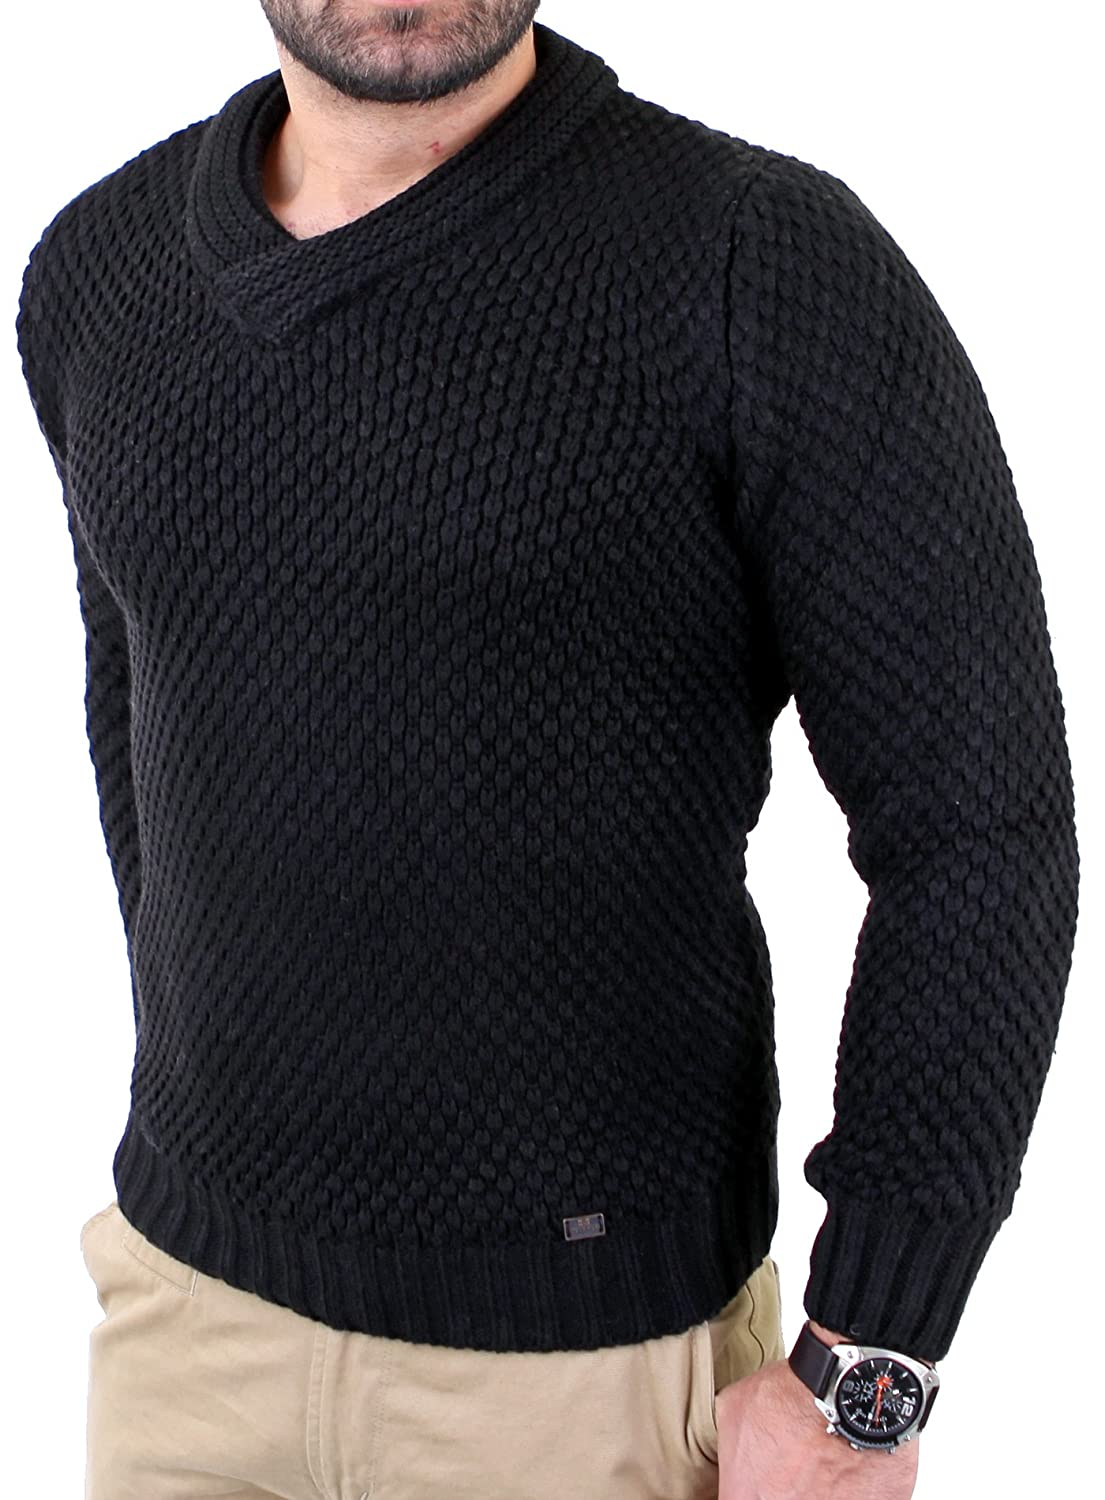 Reslad Men's Vintage Chunky Knit Winter Sweater RS - 3213